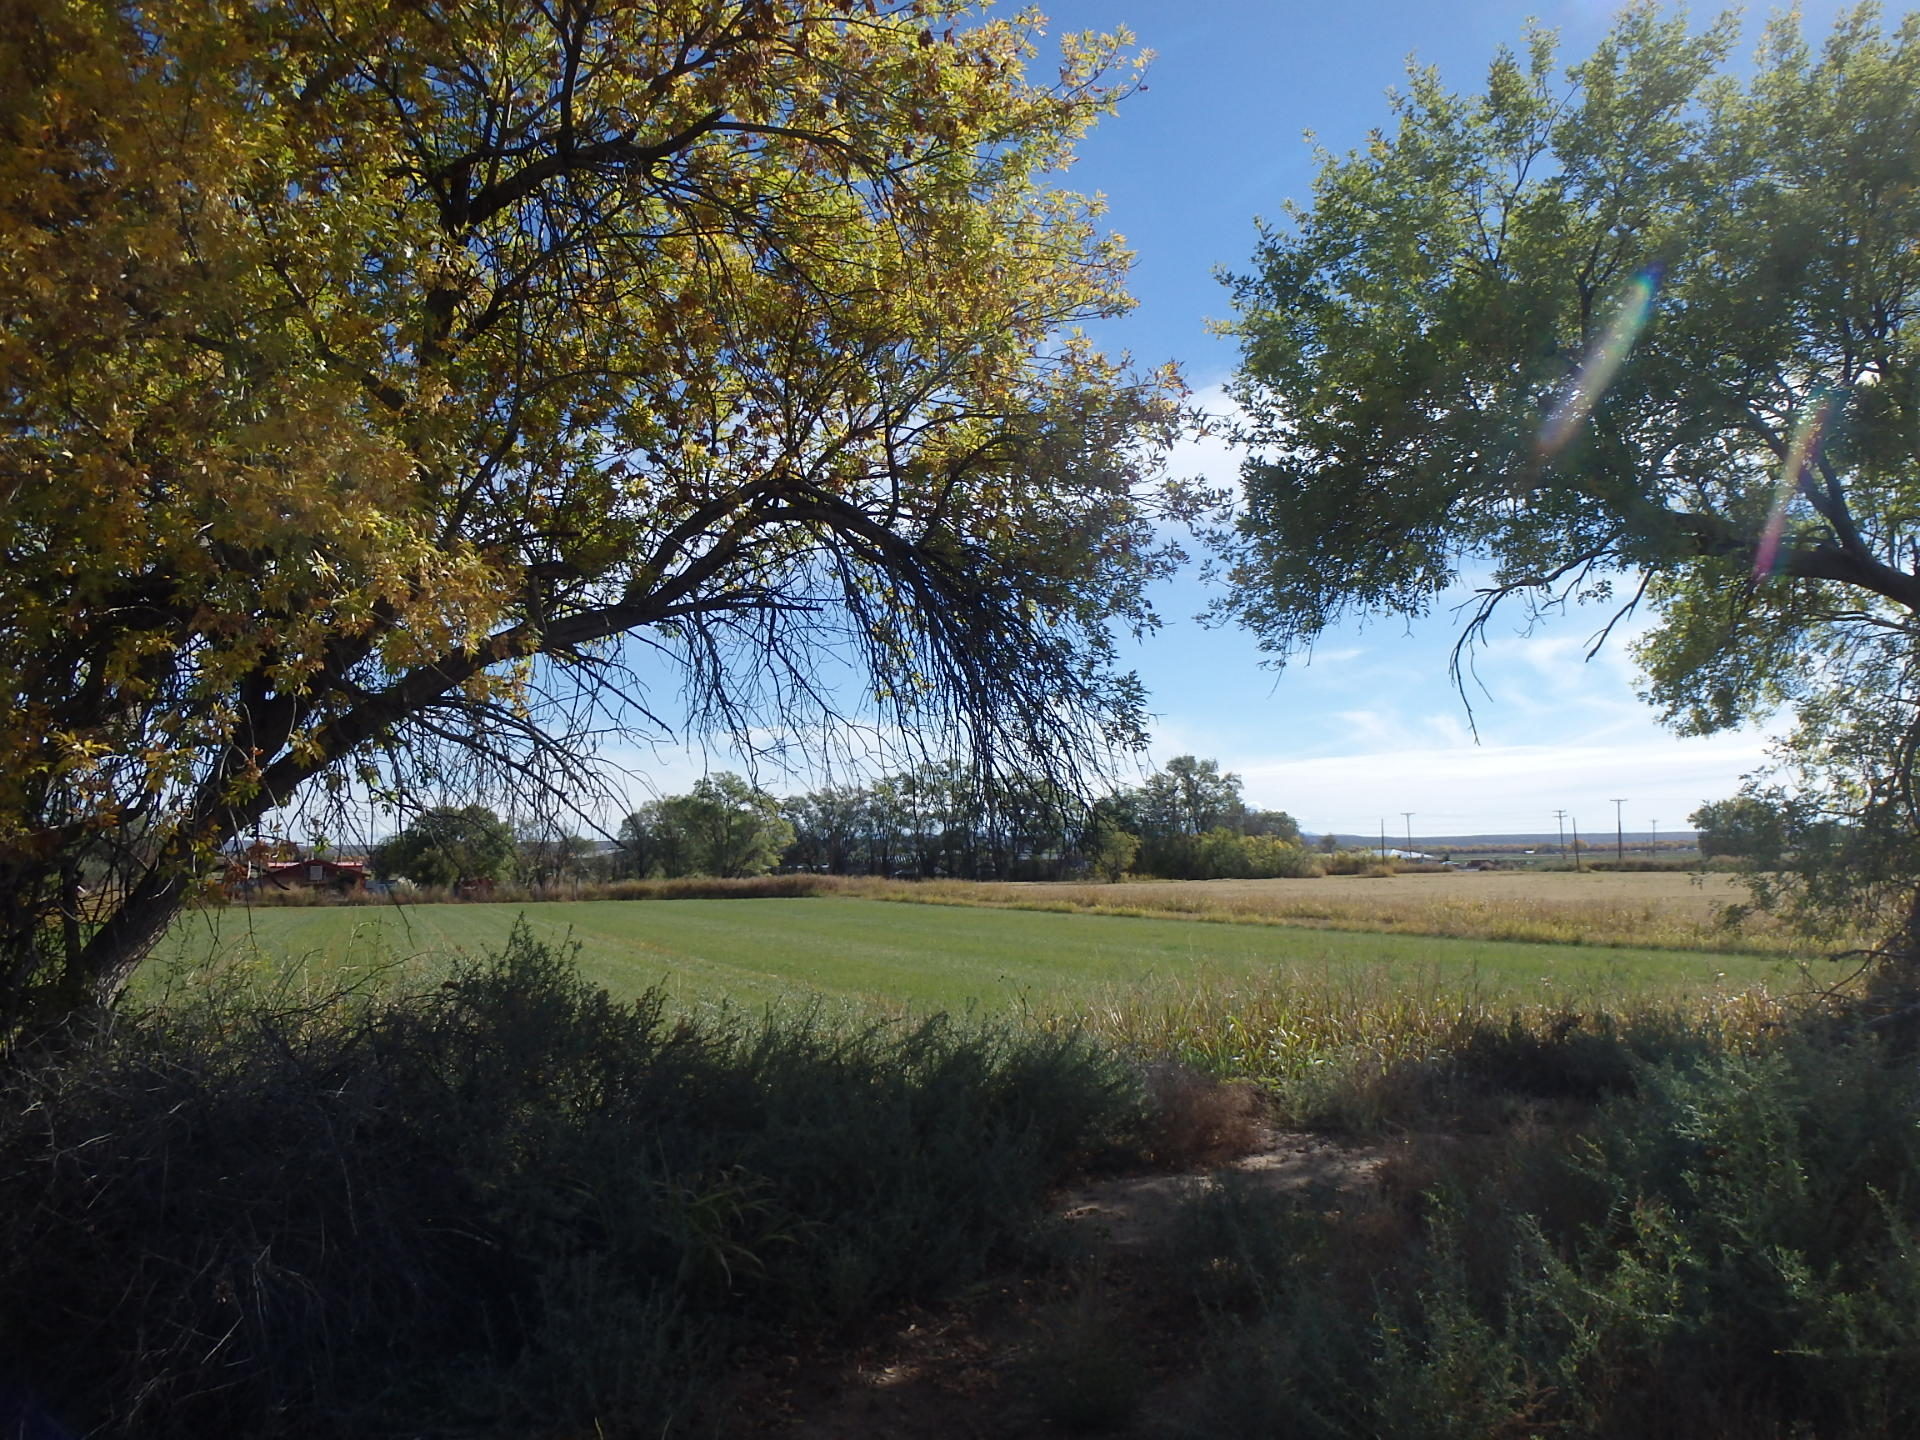 San Antonio Farm, San Antonio, NM 87832 - San Antonio, NM real estate listing